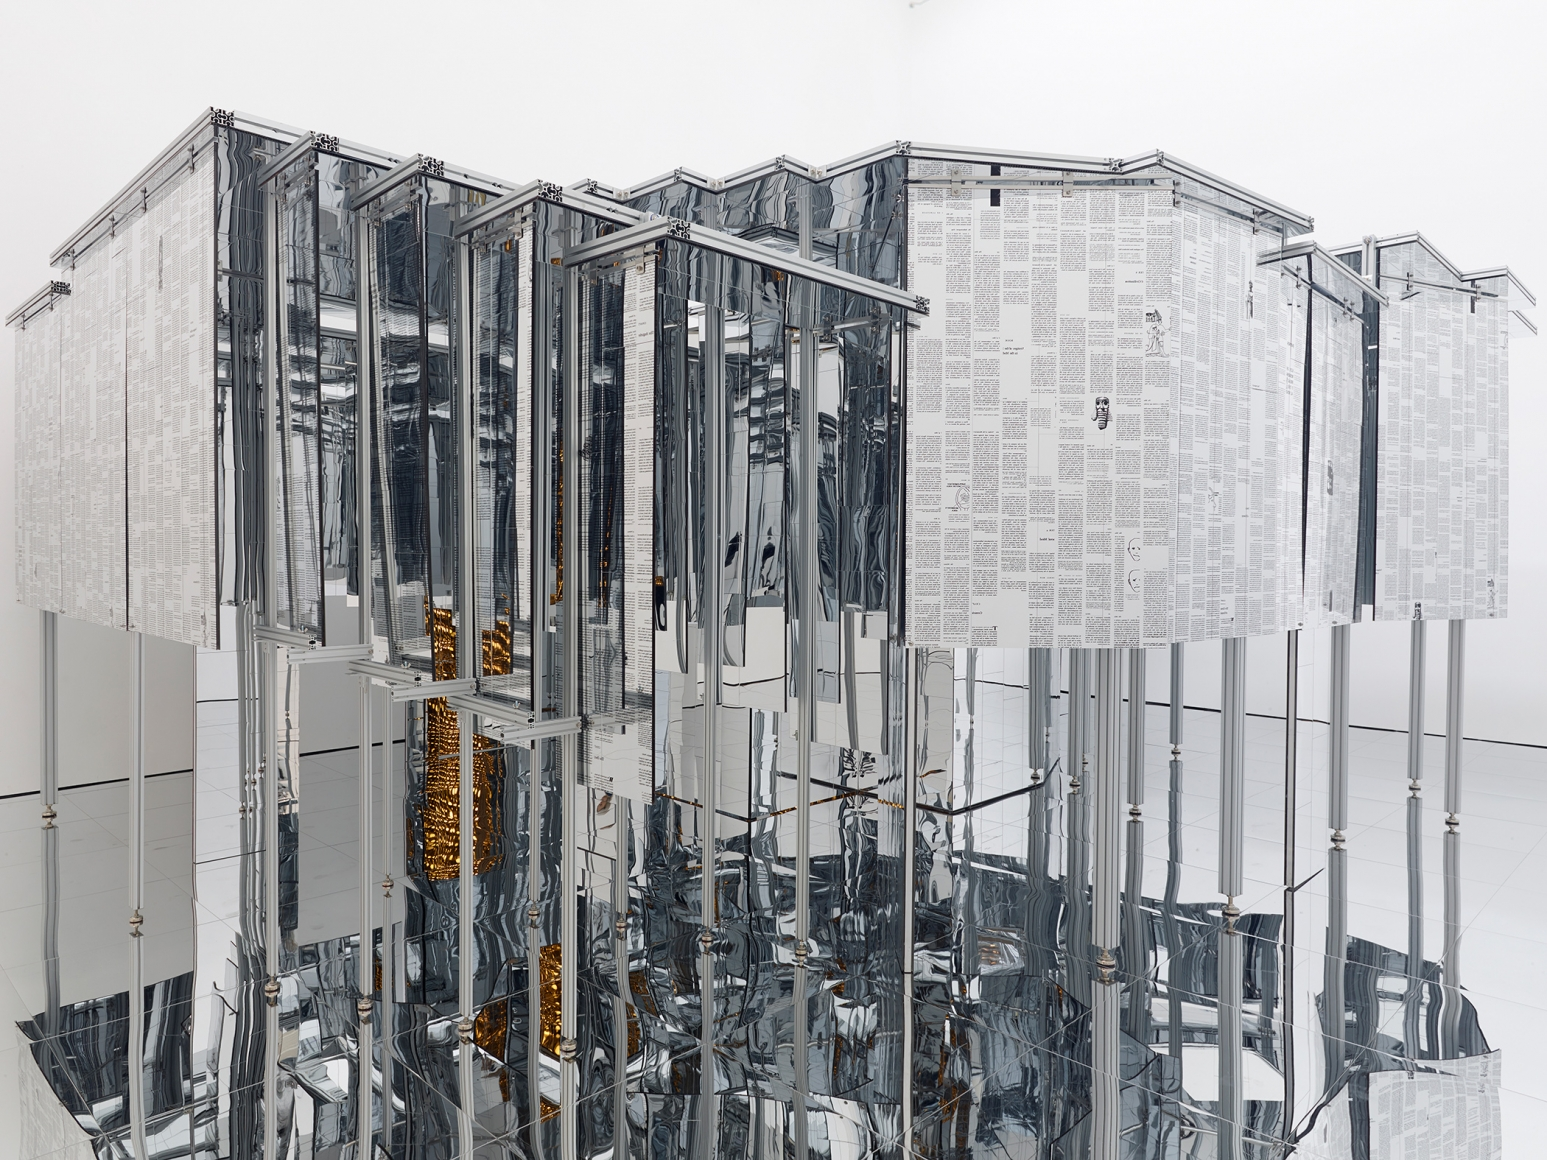 LEE BUL, Willing To Be Vulnerable, 2015–2016